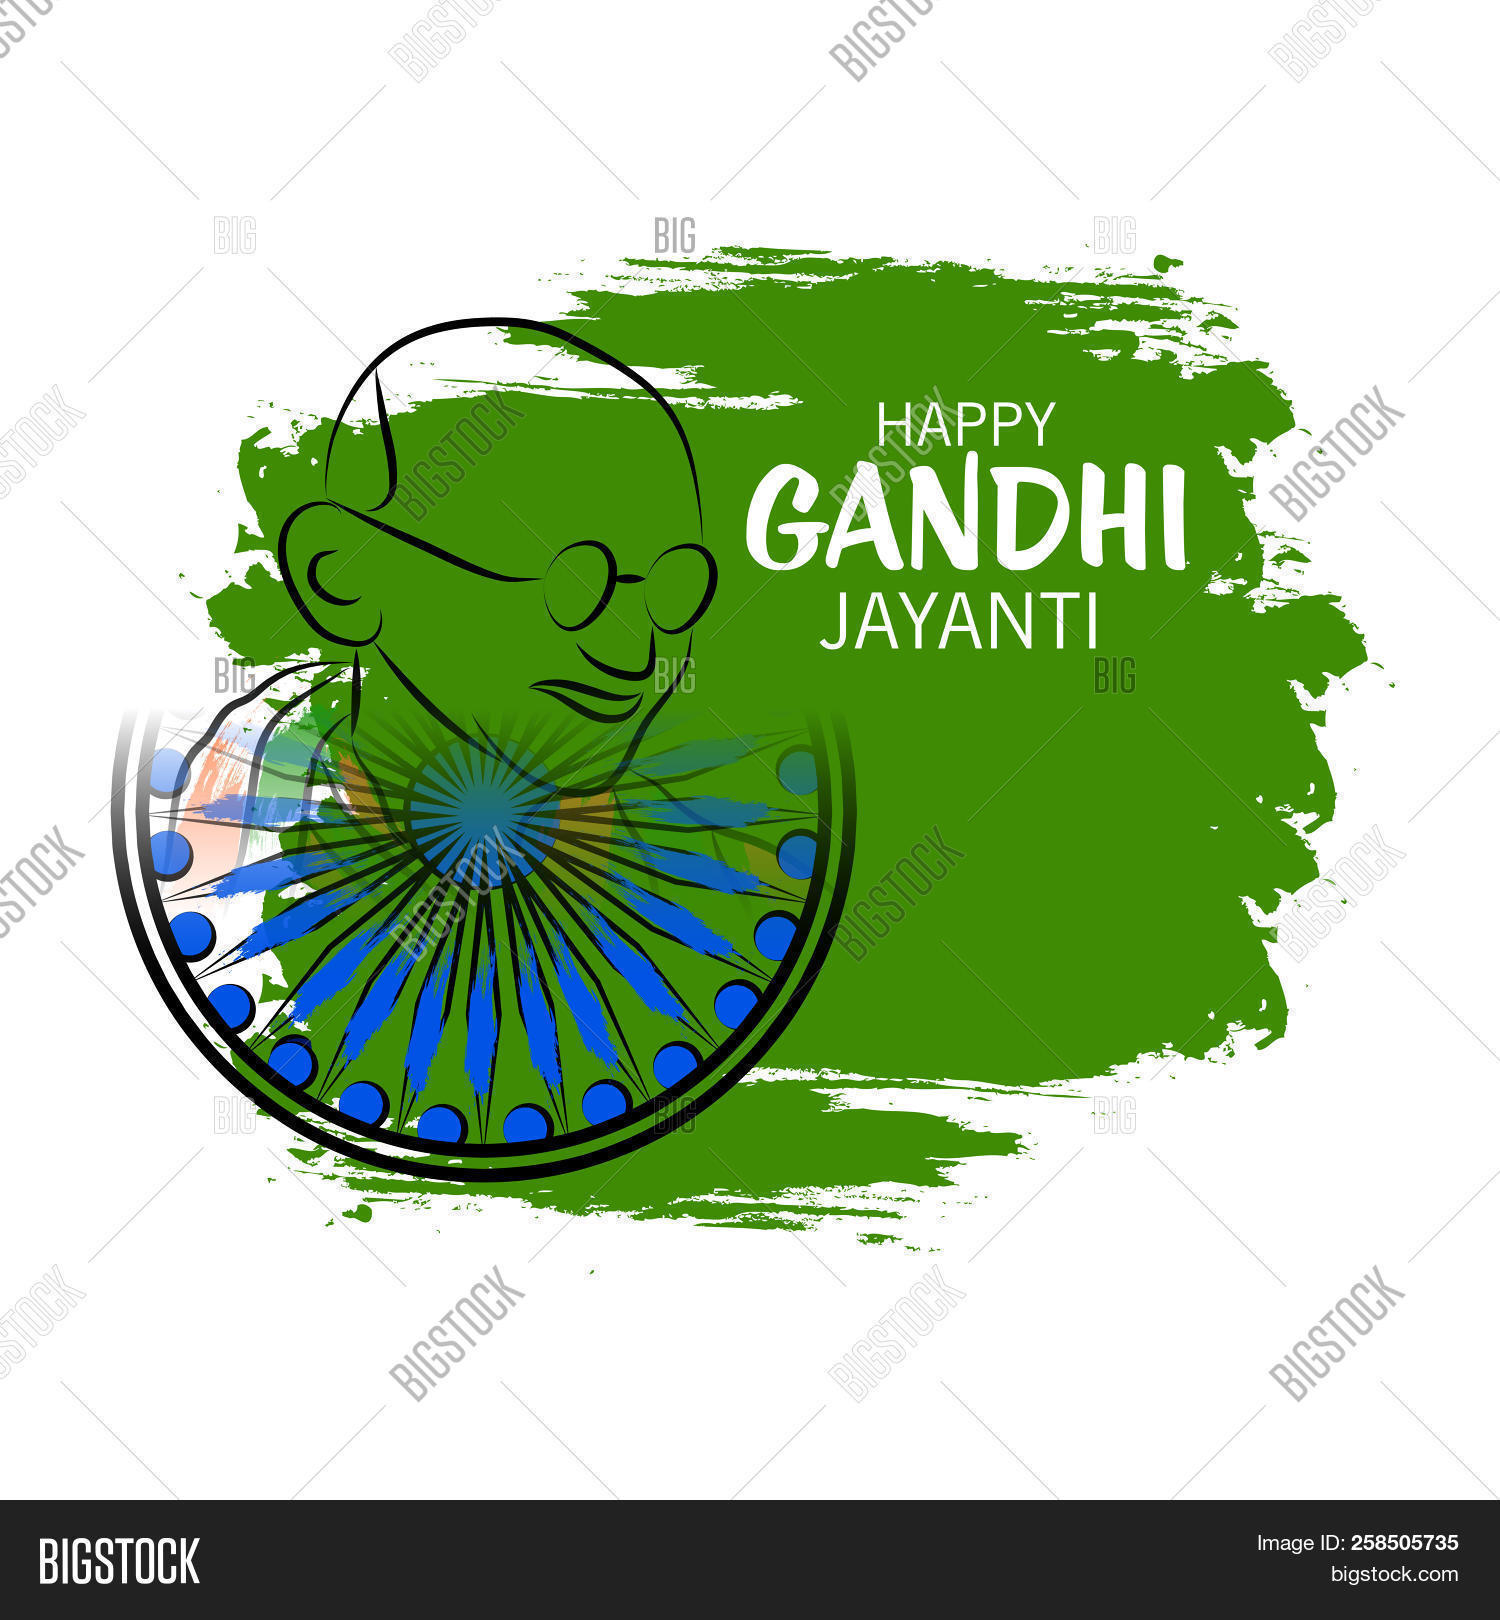 abstract,art,background,banner,birthday,brochure,creative,culture,day,design,editable,father,flag,flyer,gandhi,ghandhi,graphic,green,happy,hinduism,holiday,independence,india,indian,jayanti,mahatma,nation,national,october,old,orange,patriotic,republic,spectacles,text,travel,tricolor,vintage,wheel